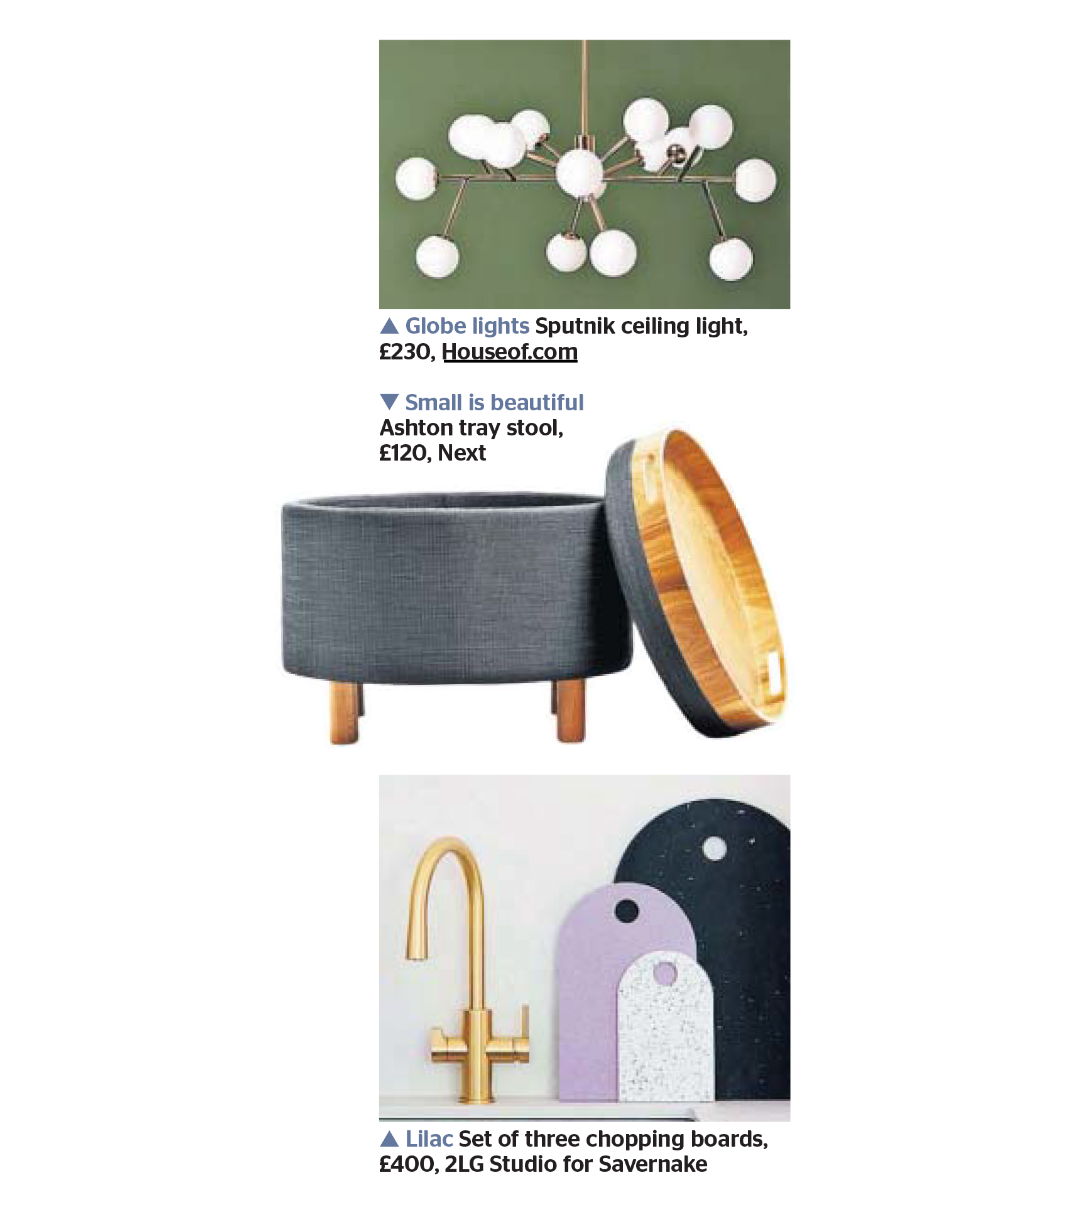 houseof-press-img-0120-thetimes-interior-trends-3